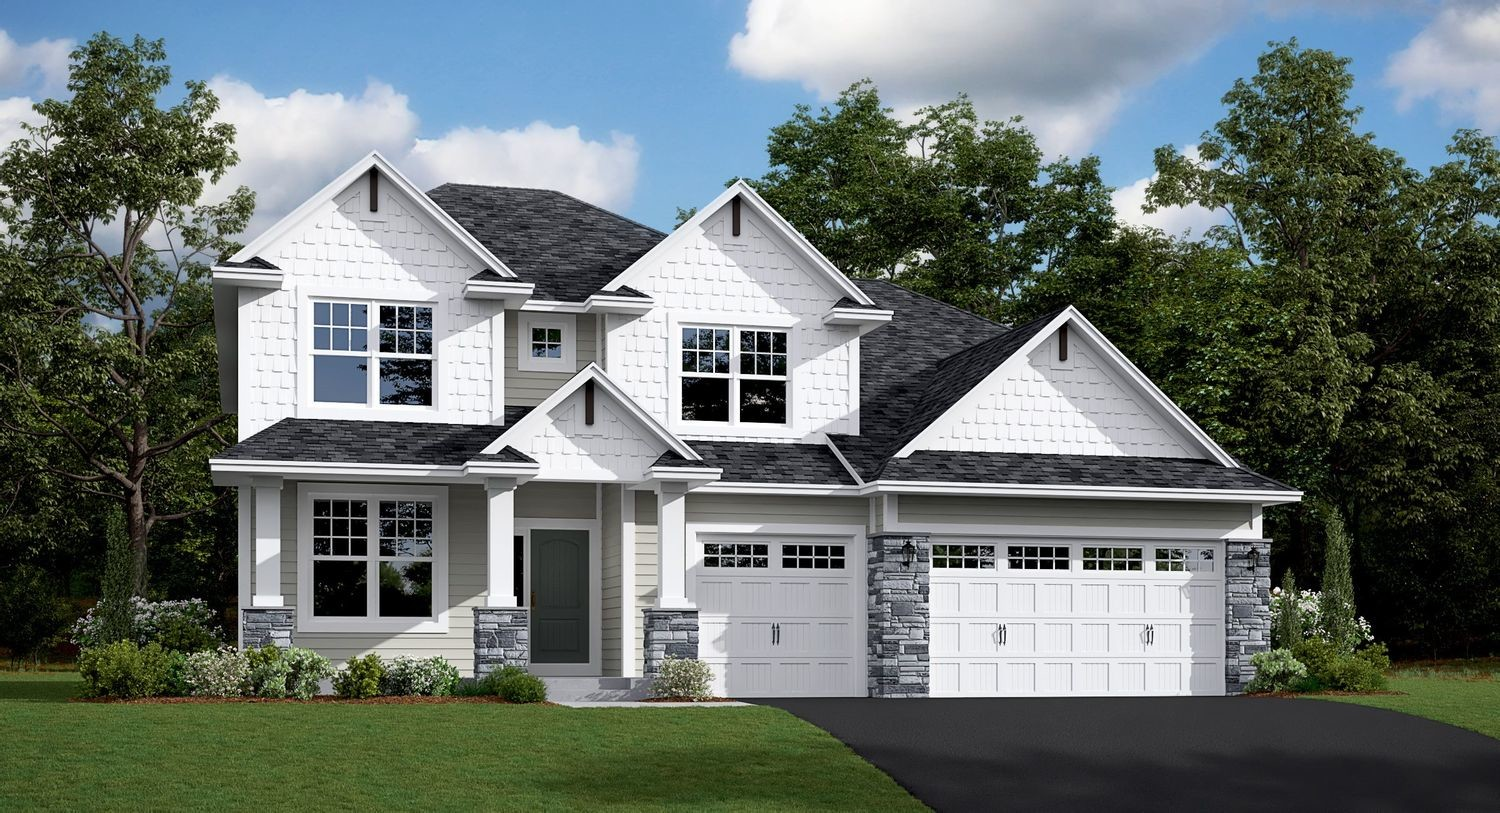 Ready To Build Home In Ravinia - Classic Collection Community